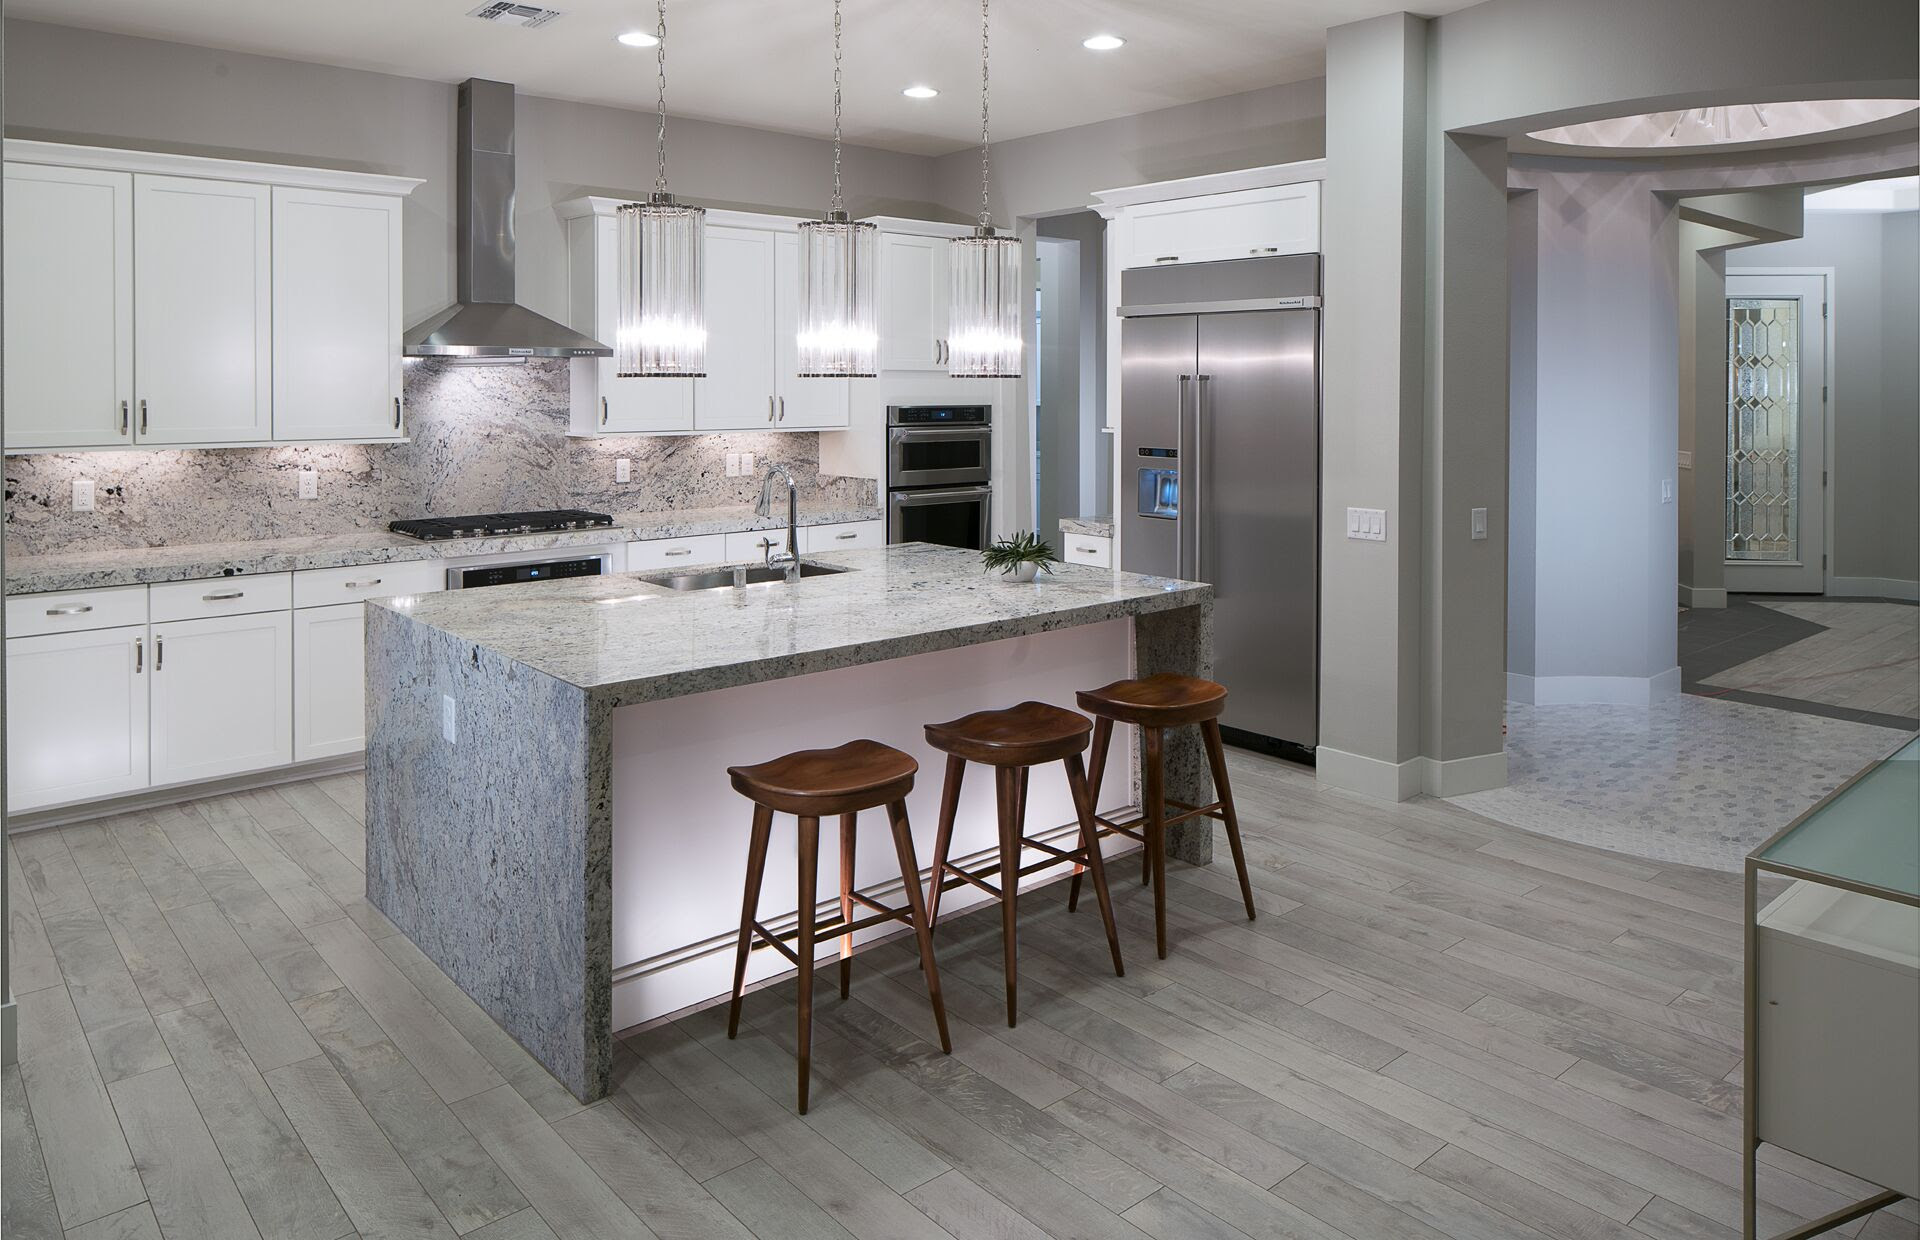 5 Kitchen Design Trends to Take From Model Homes ...